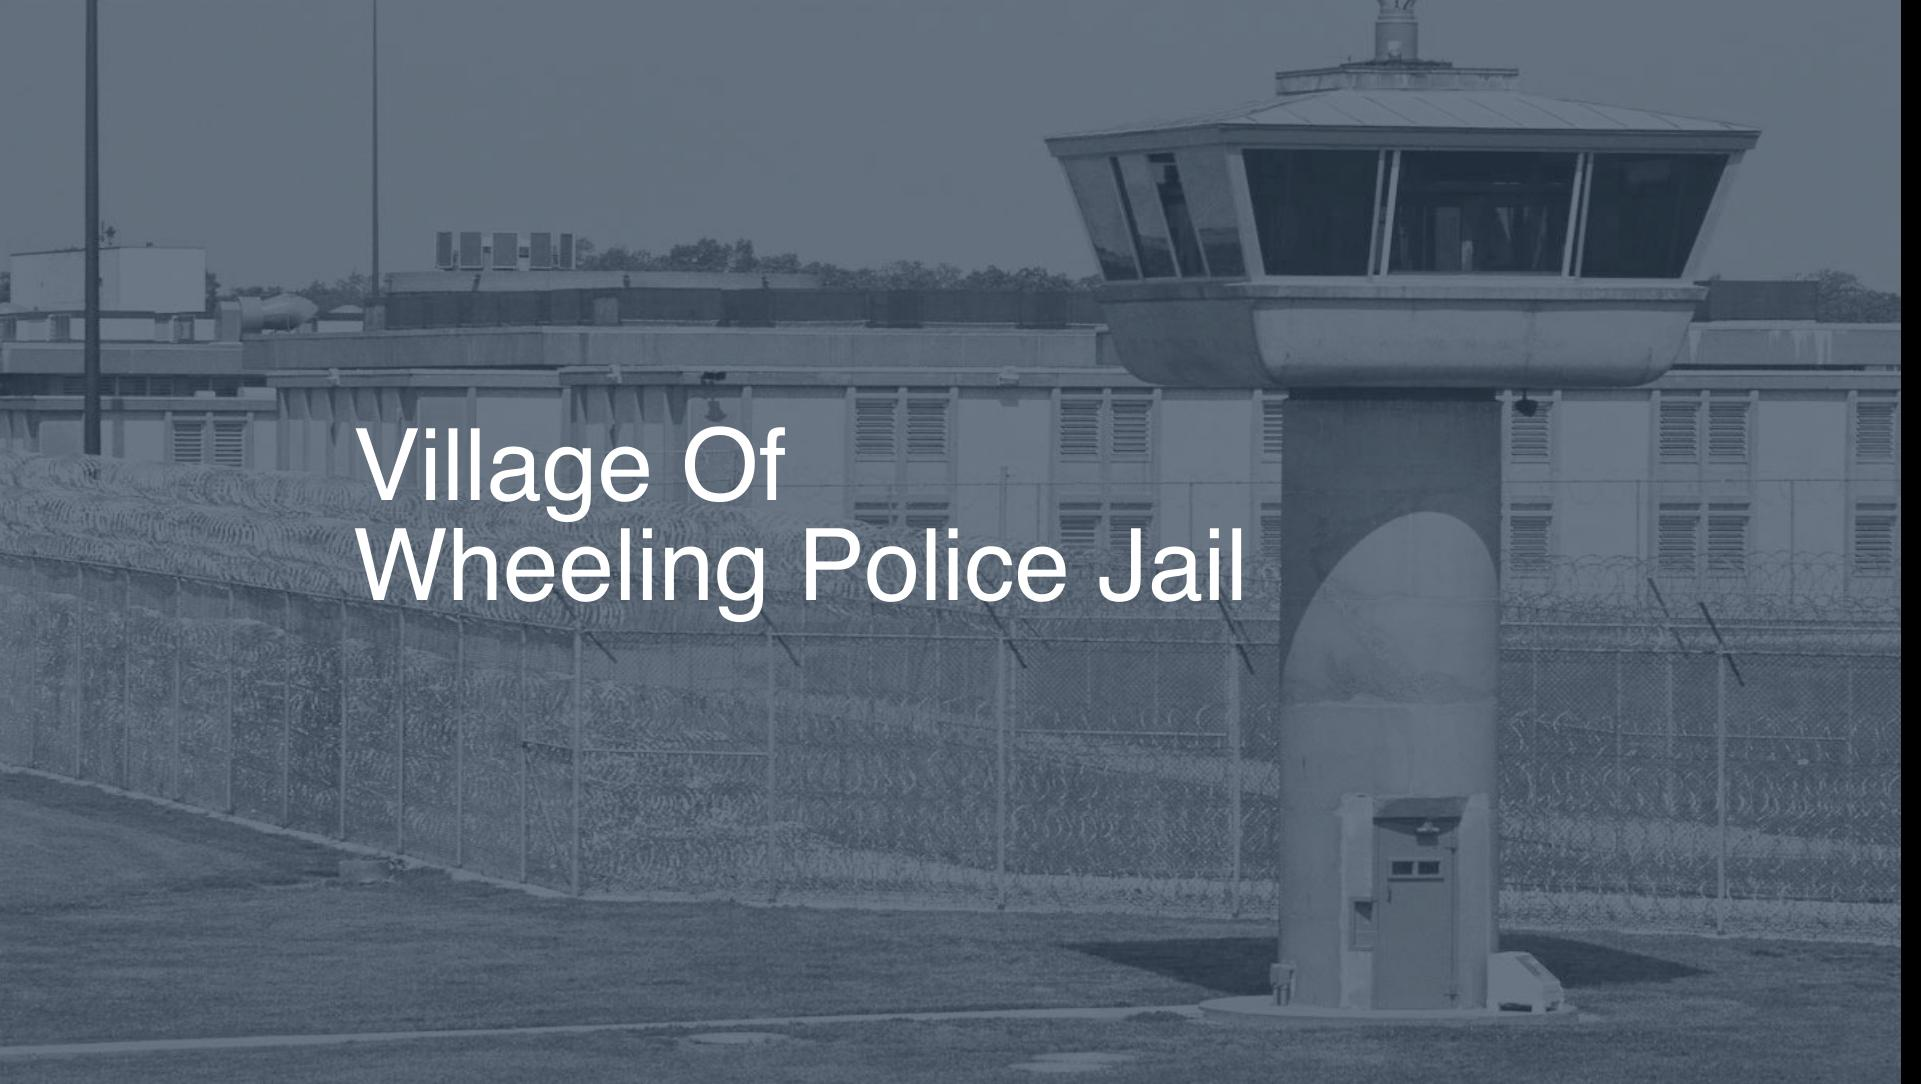 Village of Wheeling Police Jail correctional facility picture